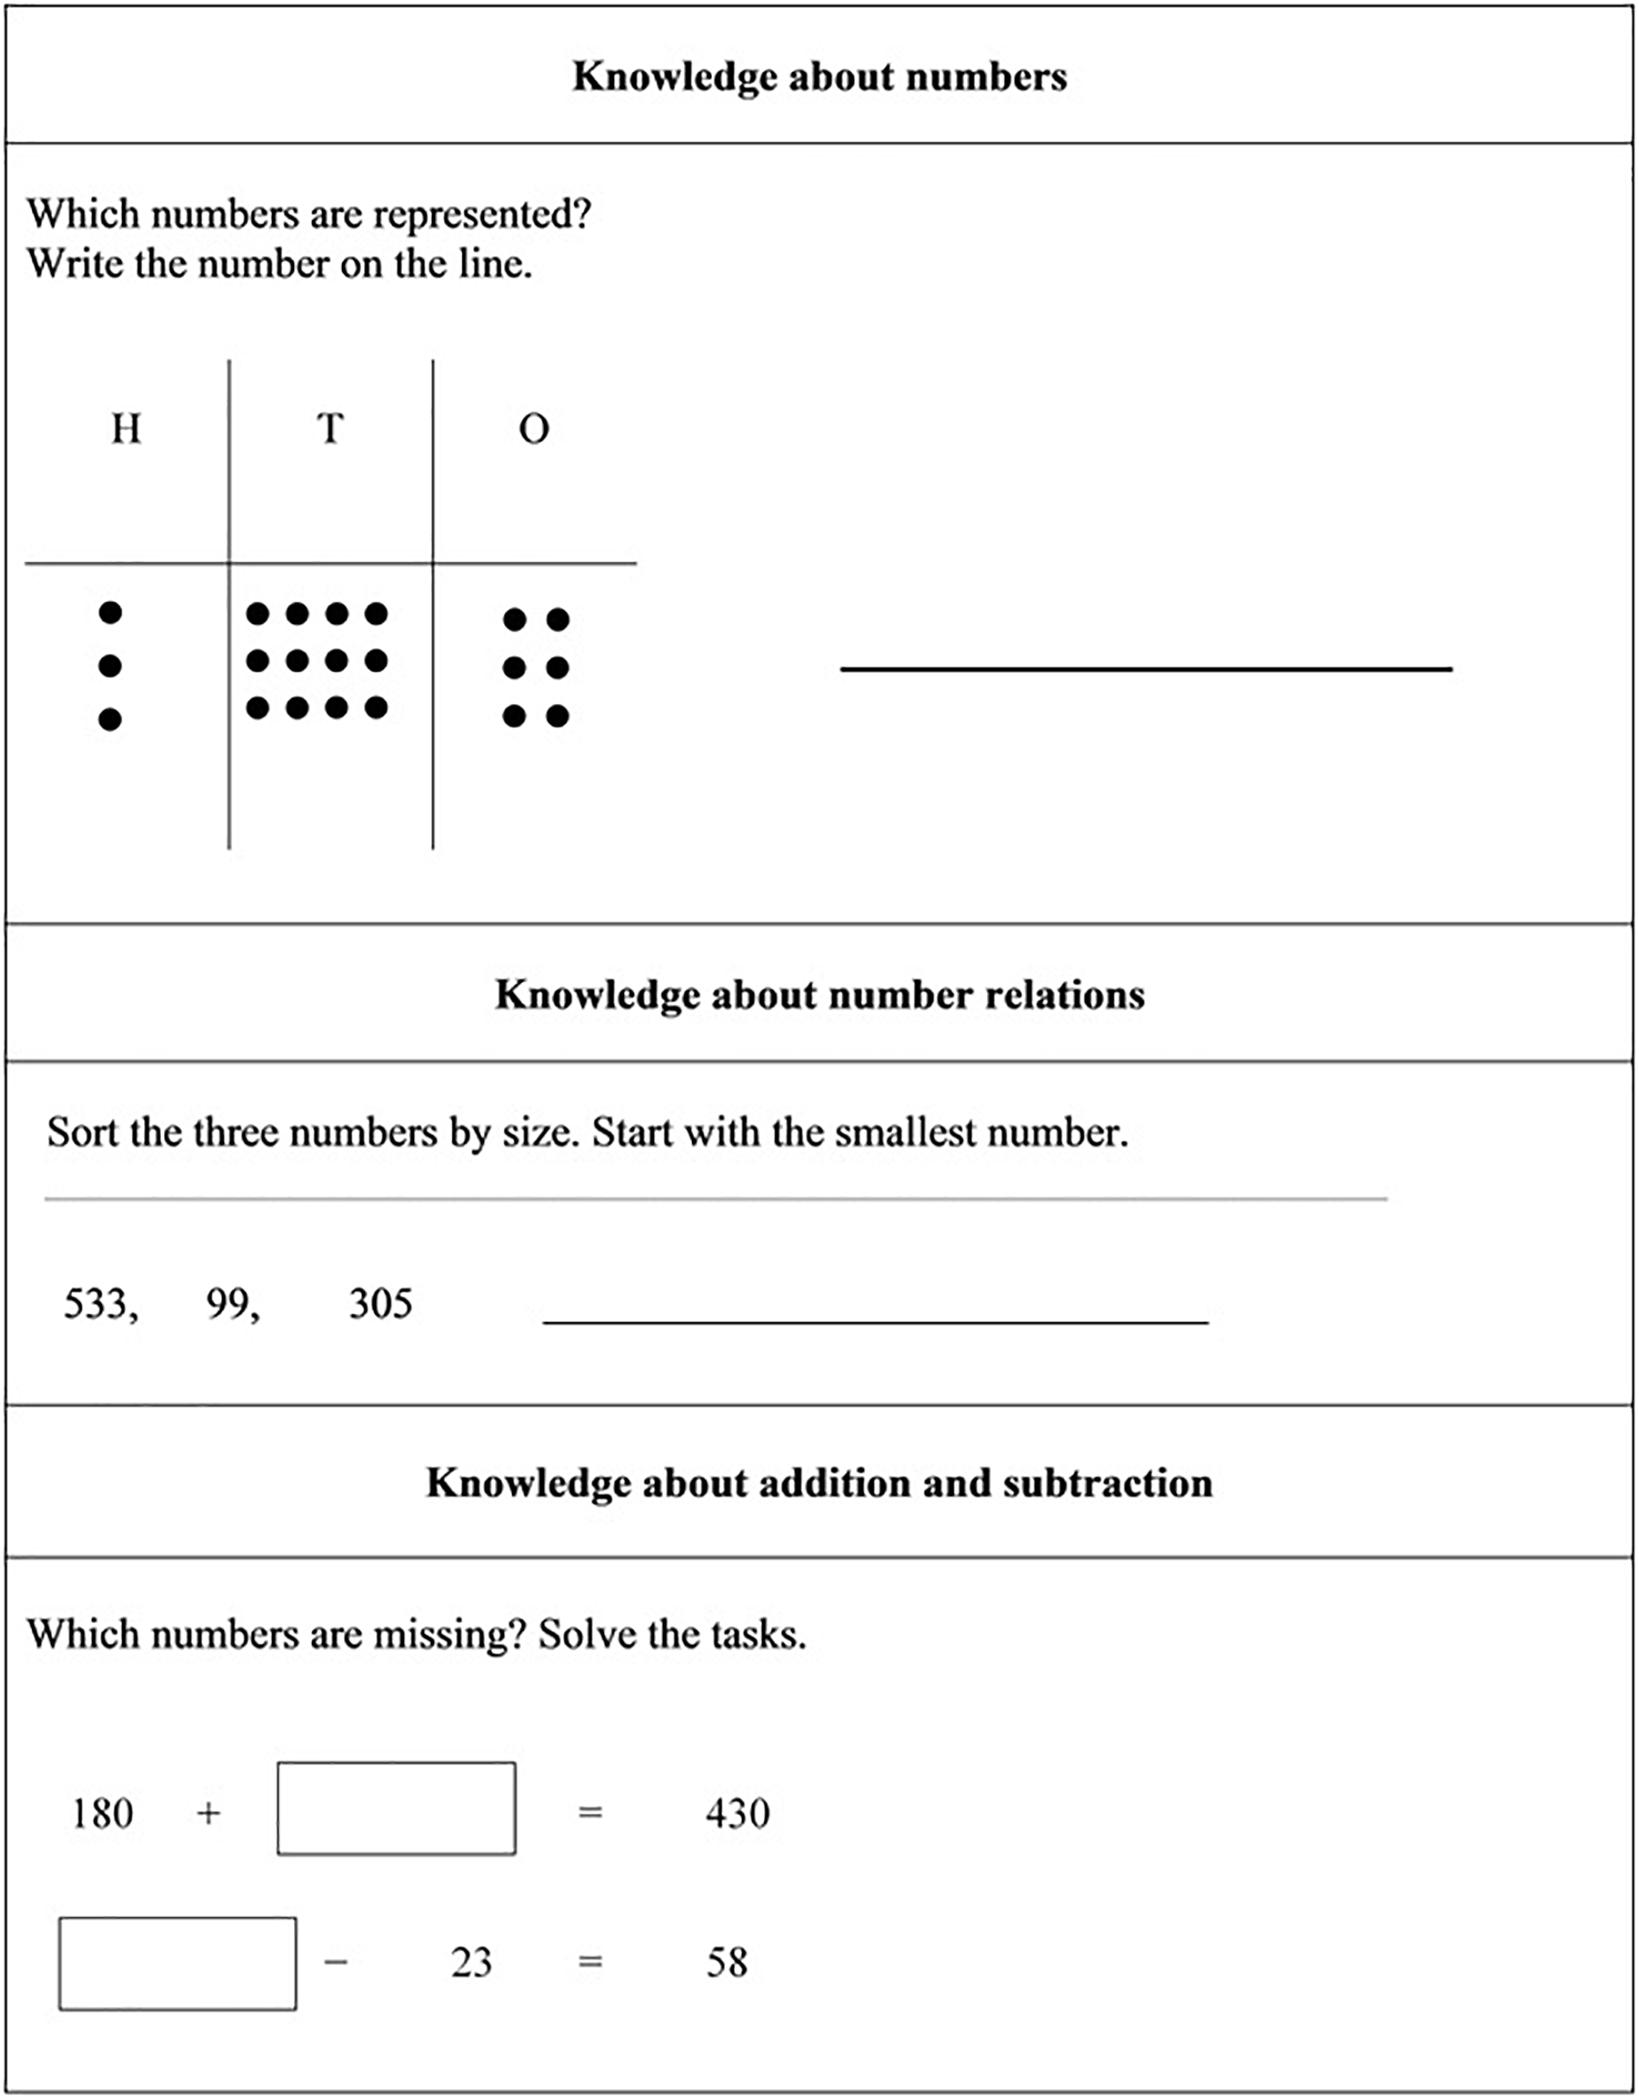 Frontiers | Interleaved Learning in Elementary School Mathematics